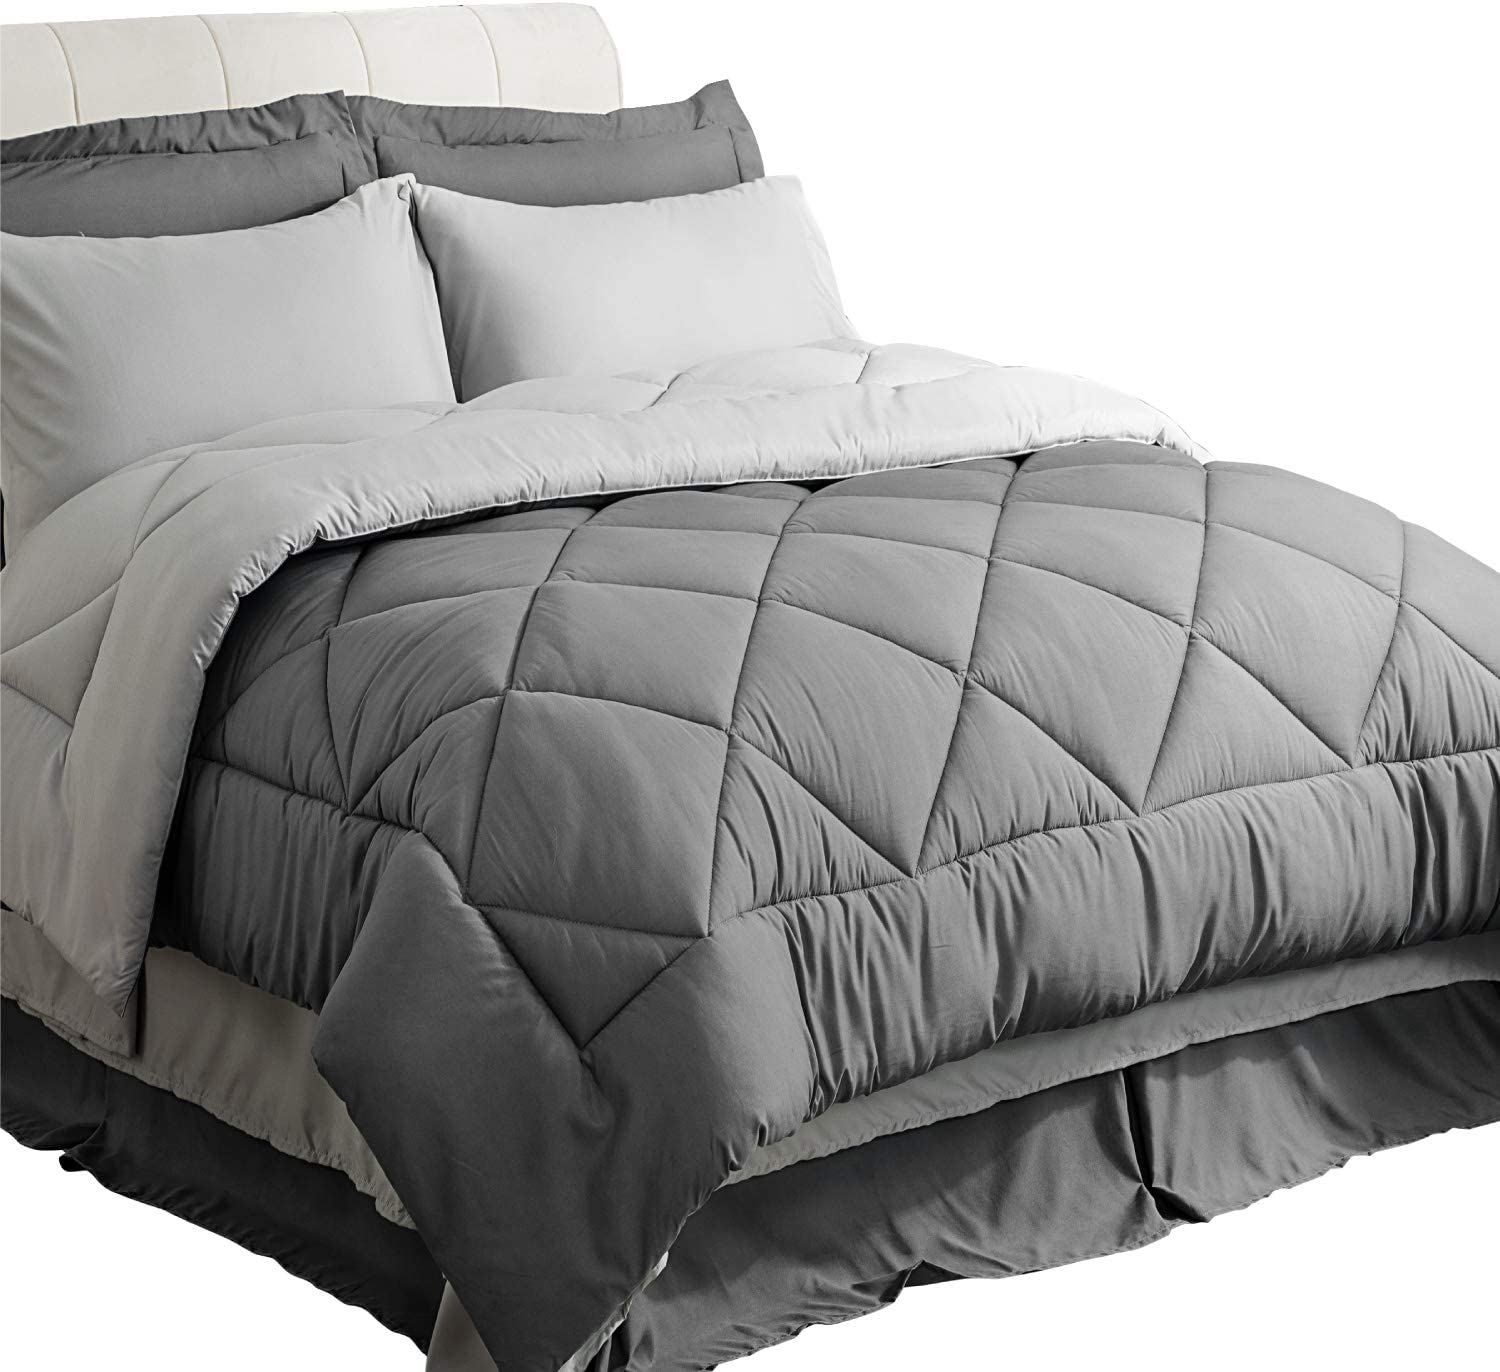 Amazon Com Bedsure Bedding Comforter Sets Queen Comforter Bed In A Bag 8 Pieces Grey Bedding Sets Queen With Comforter 1 Comforter 2 Pillow Shams 1 Flat Sheet 1 Fitted Sheet